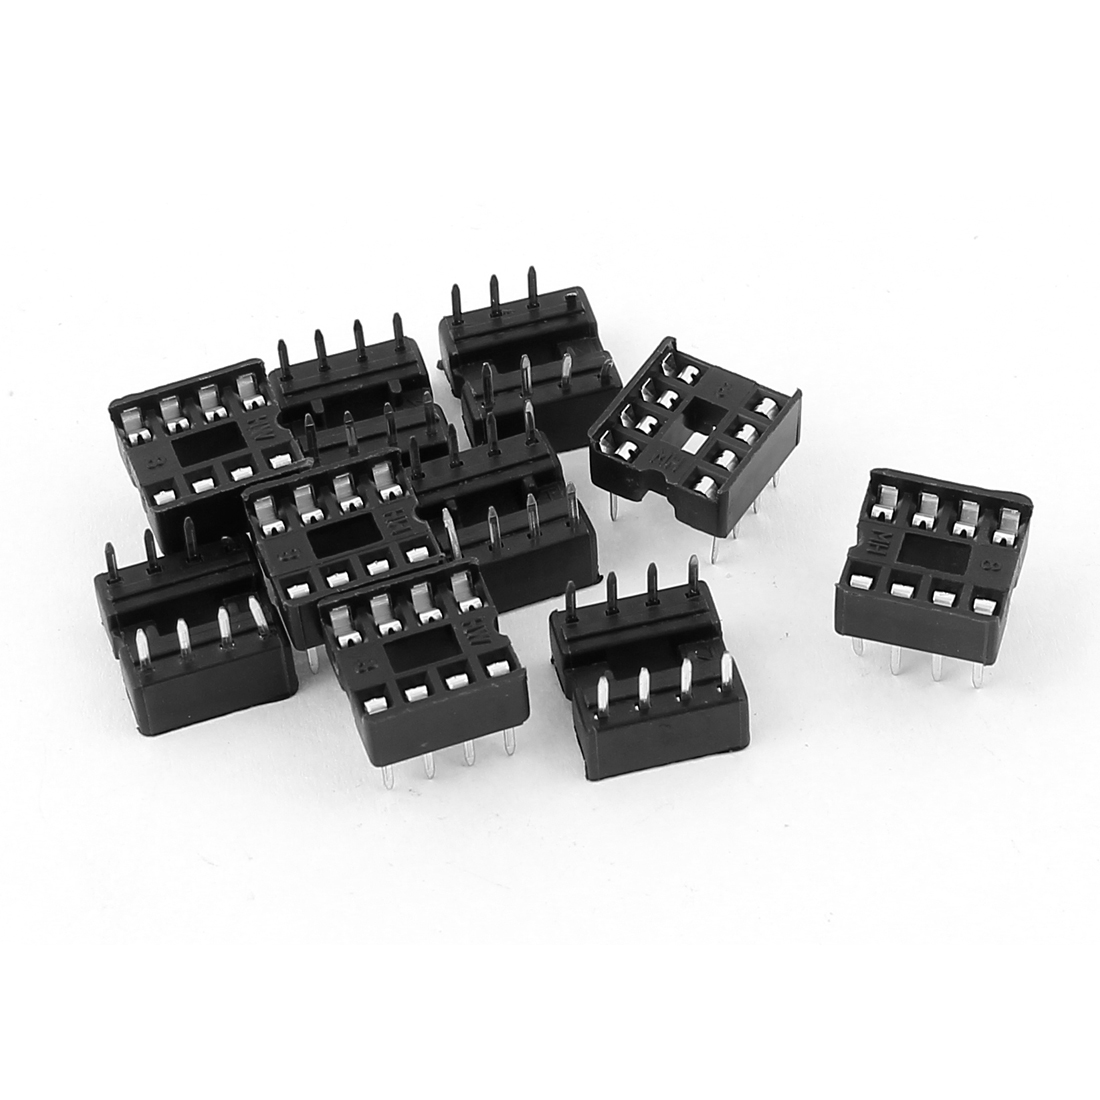 10pcs Solder Type 2.54mm Pitch Dual Row 8P Female DIP IC Sockets Adaptors Connectors for PCB Board